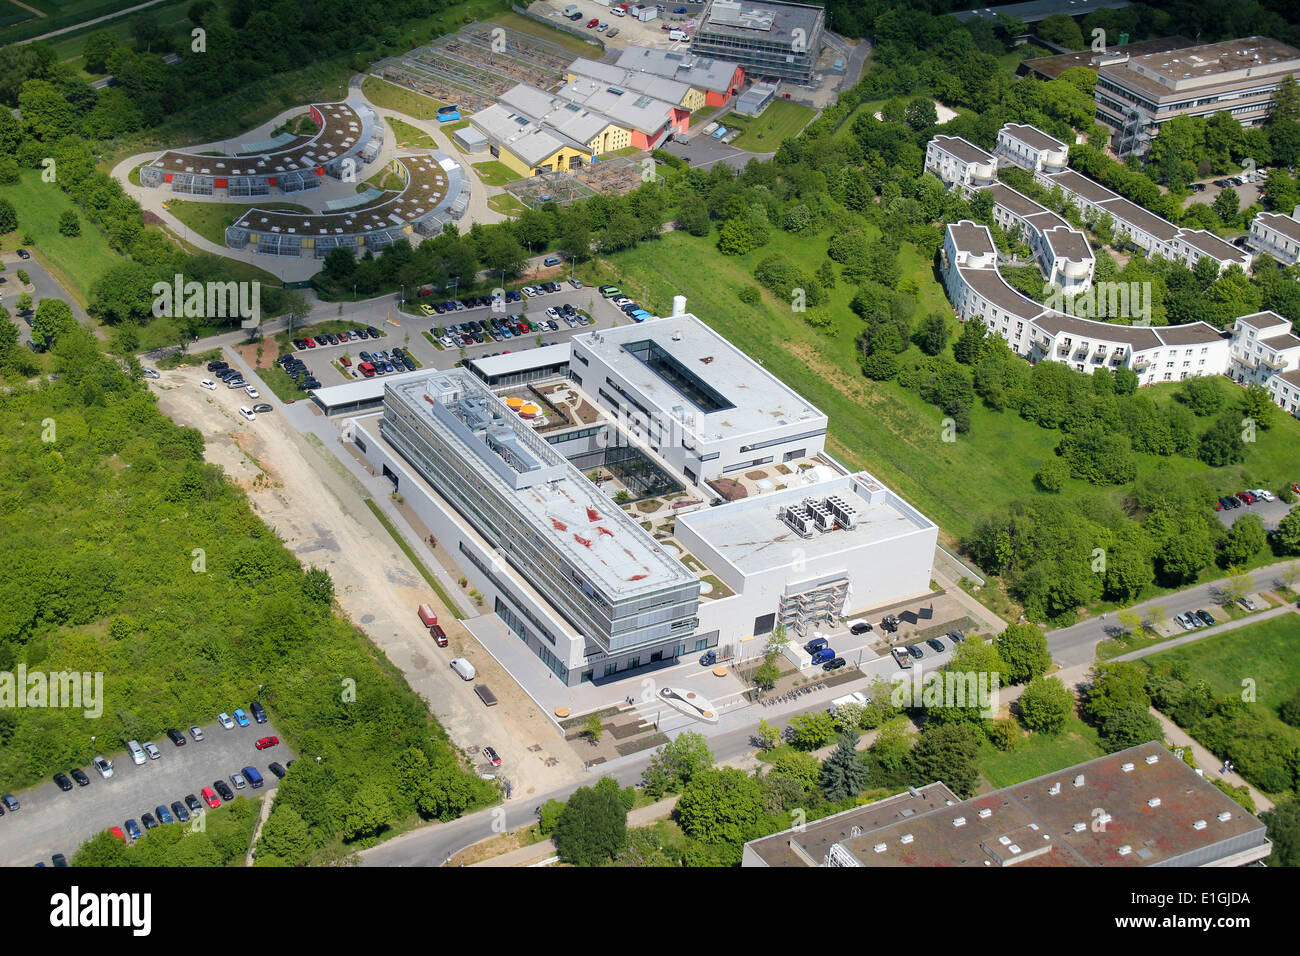 Aerial view of Max Planck Institute for solar system research Göttingen (Lower Saxony, Germany), picture taken at Stock Photo